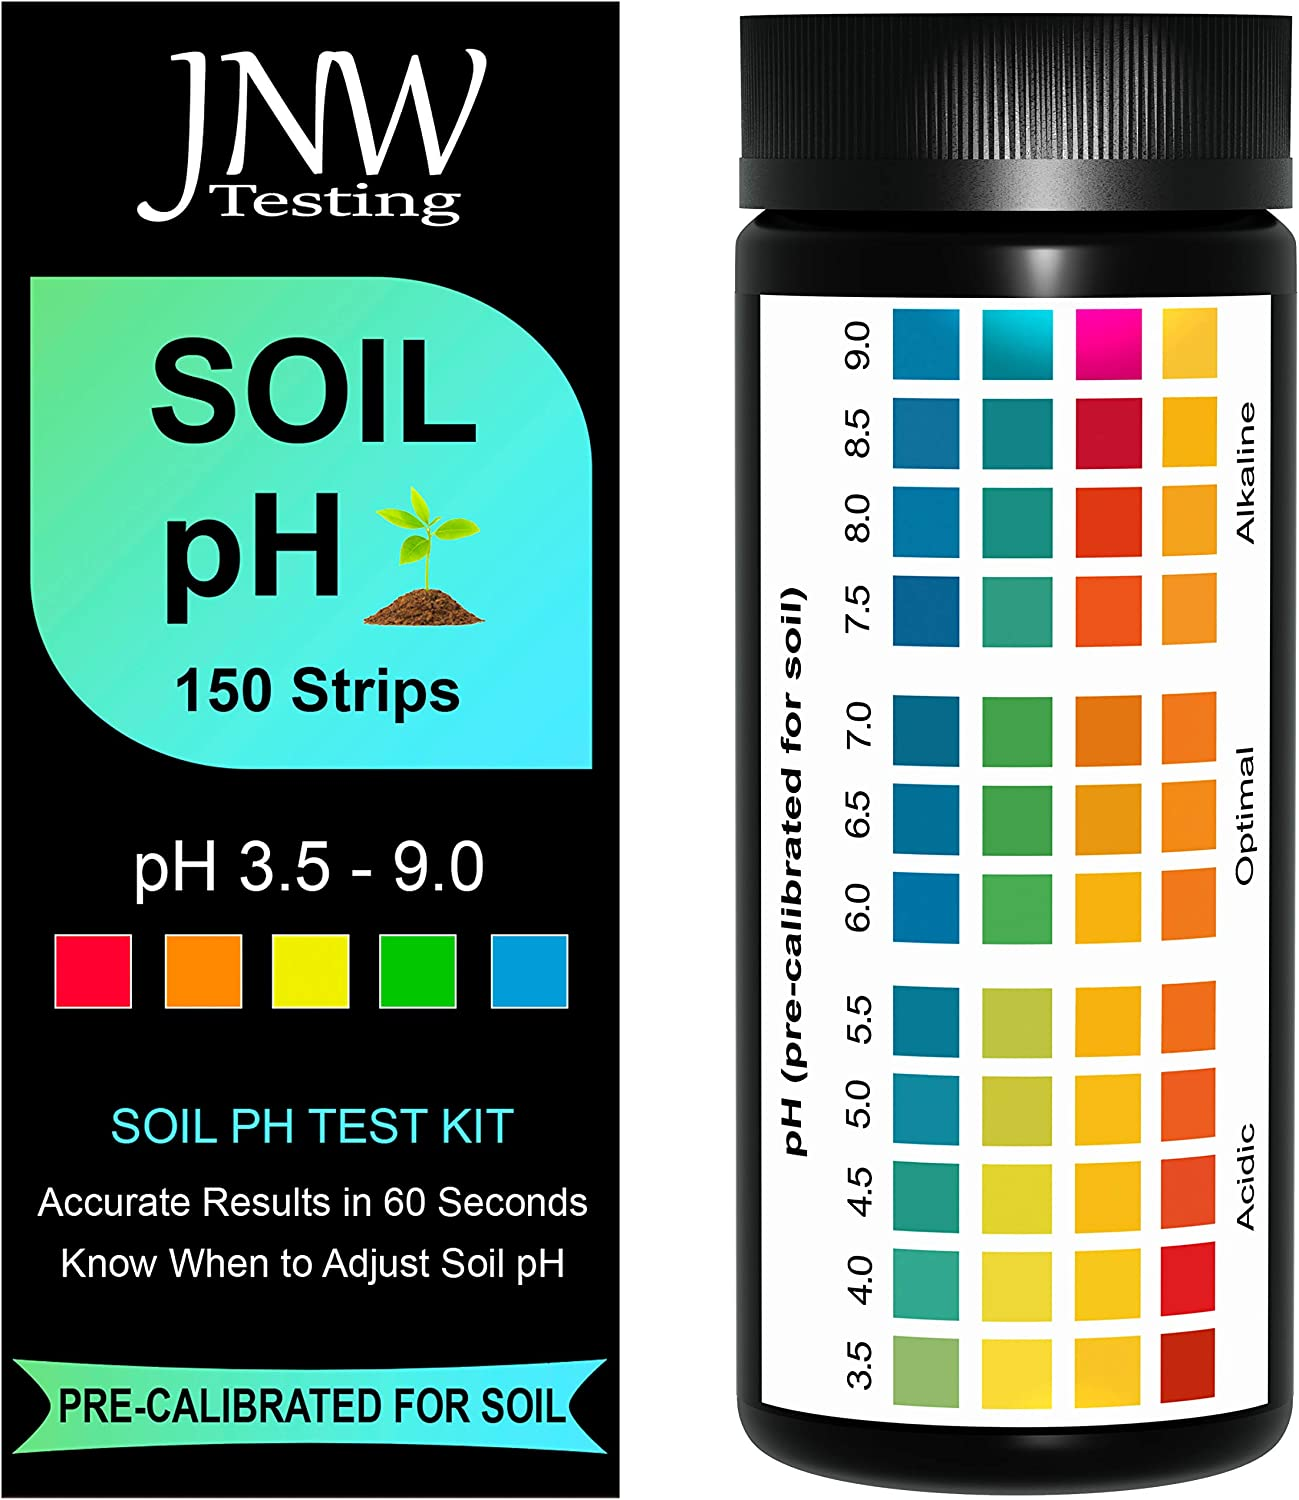 JNW Direct Soil pH Test Strips - 150 Strip MEGA Pack, Best Kit for Accurate Soil Testing at Home, pH 3.5-9.0, Free App & Ebook Included, is Your Soil Acidic, Optimal or Alkaline (Packaging May Vary)